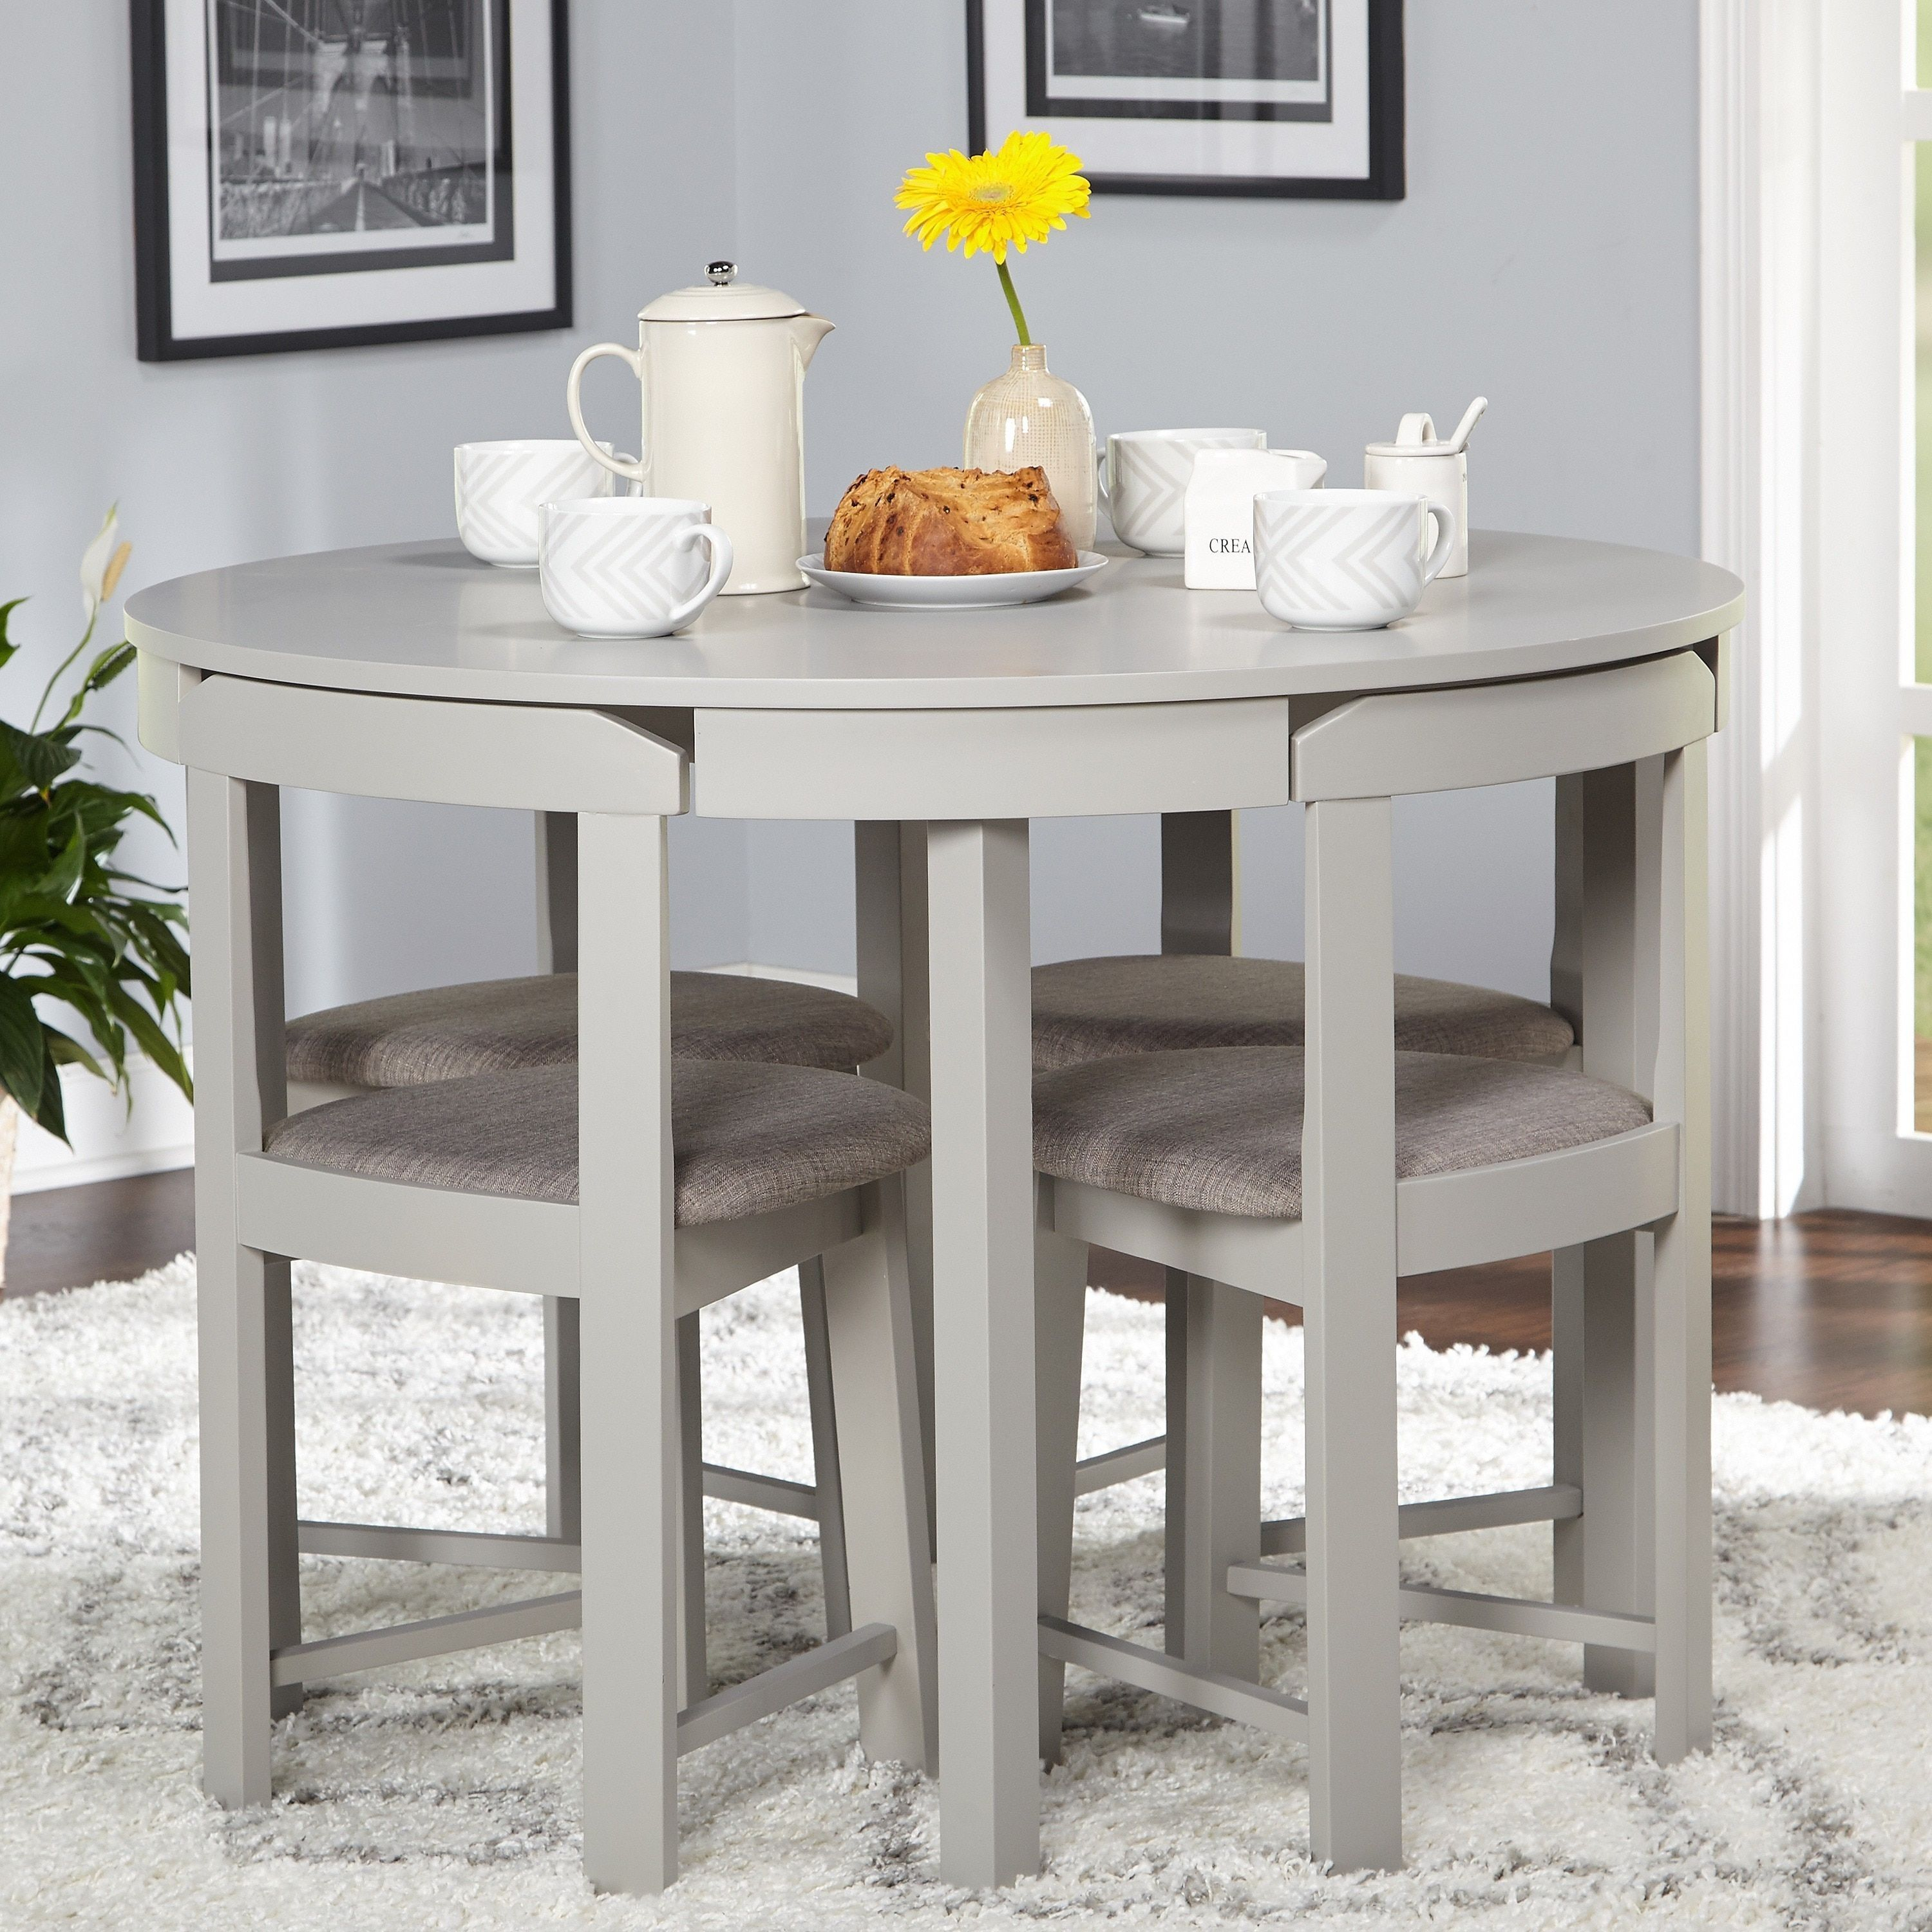 Perfect For Smaller Spaces The 5 Piece Tobey Compact Dining Set For Most Up To Date Berrios 3 Piece Counter Height Dining Sets (View 12 of 20)